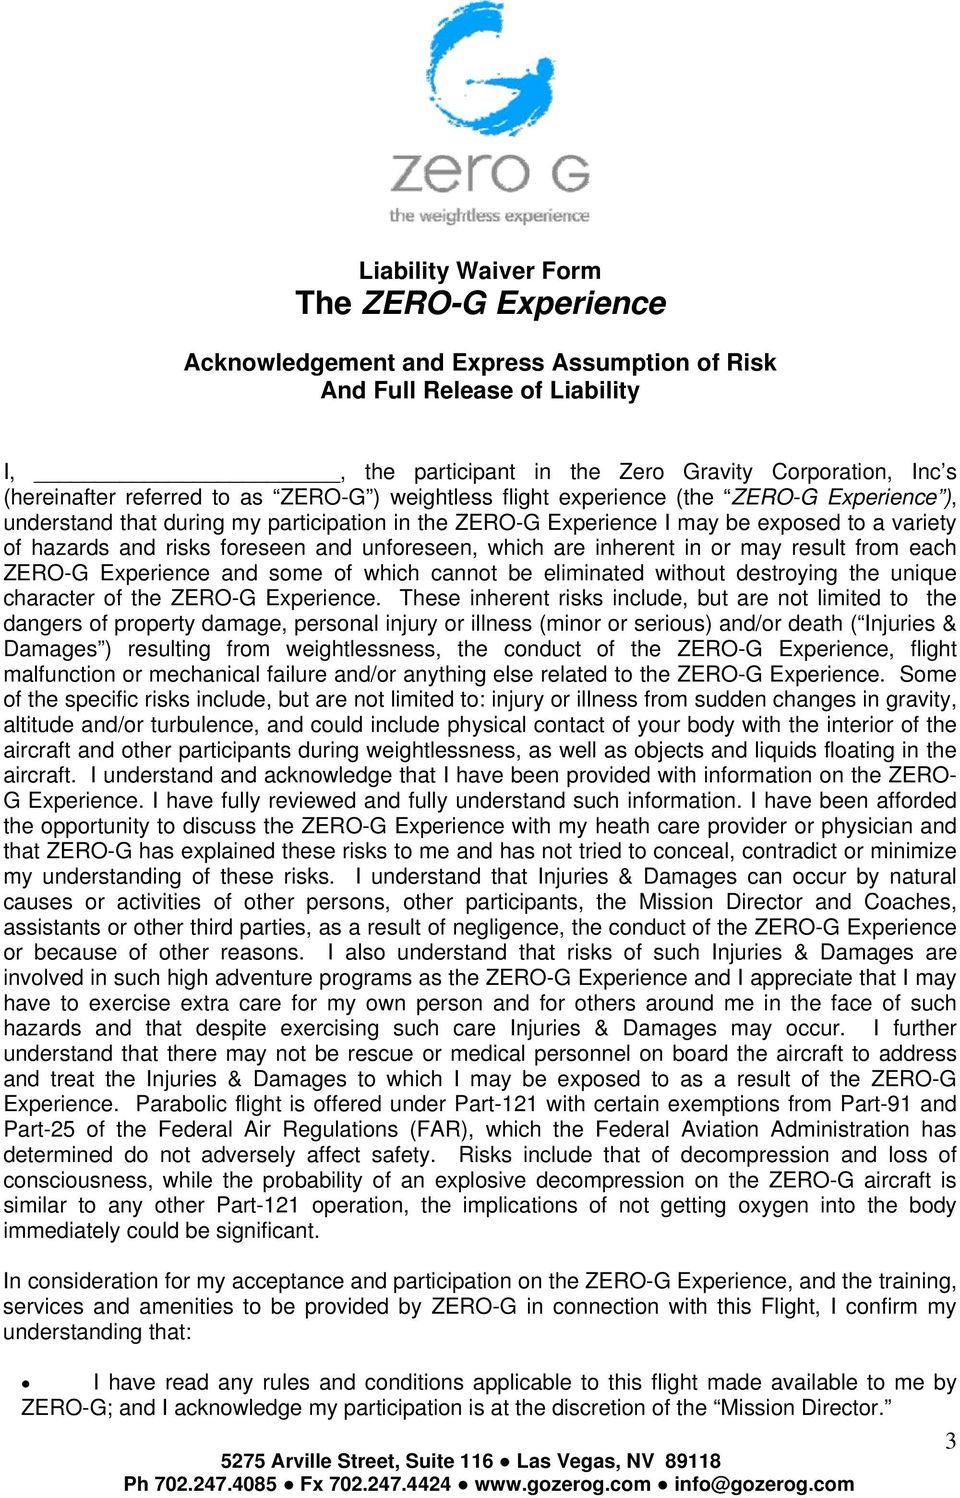 which are inherent in or may result from each ZERO-G Experience and some of which cannot be eliminated without destroying the unique character of the ZERO-G Experience.